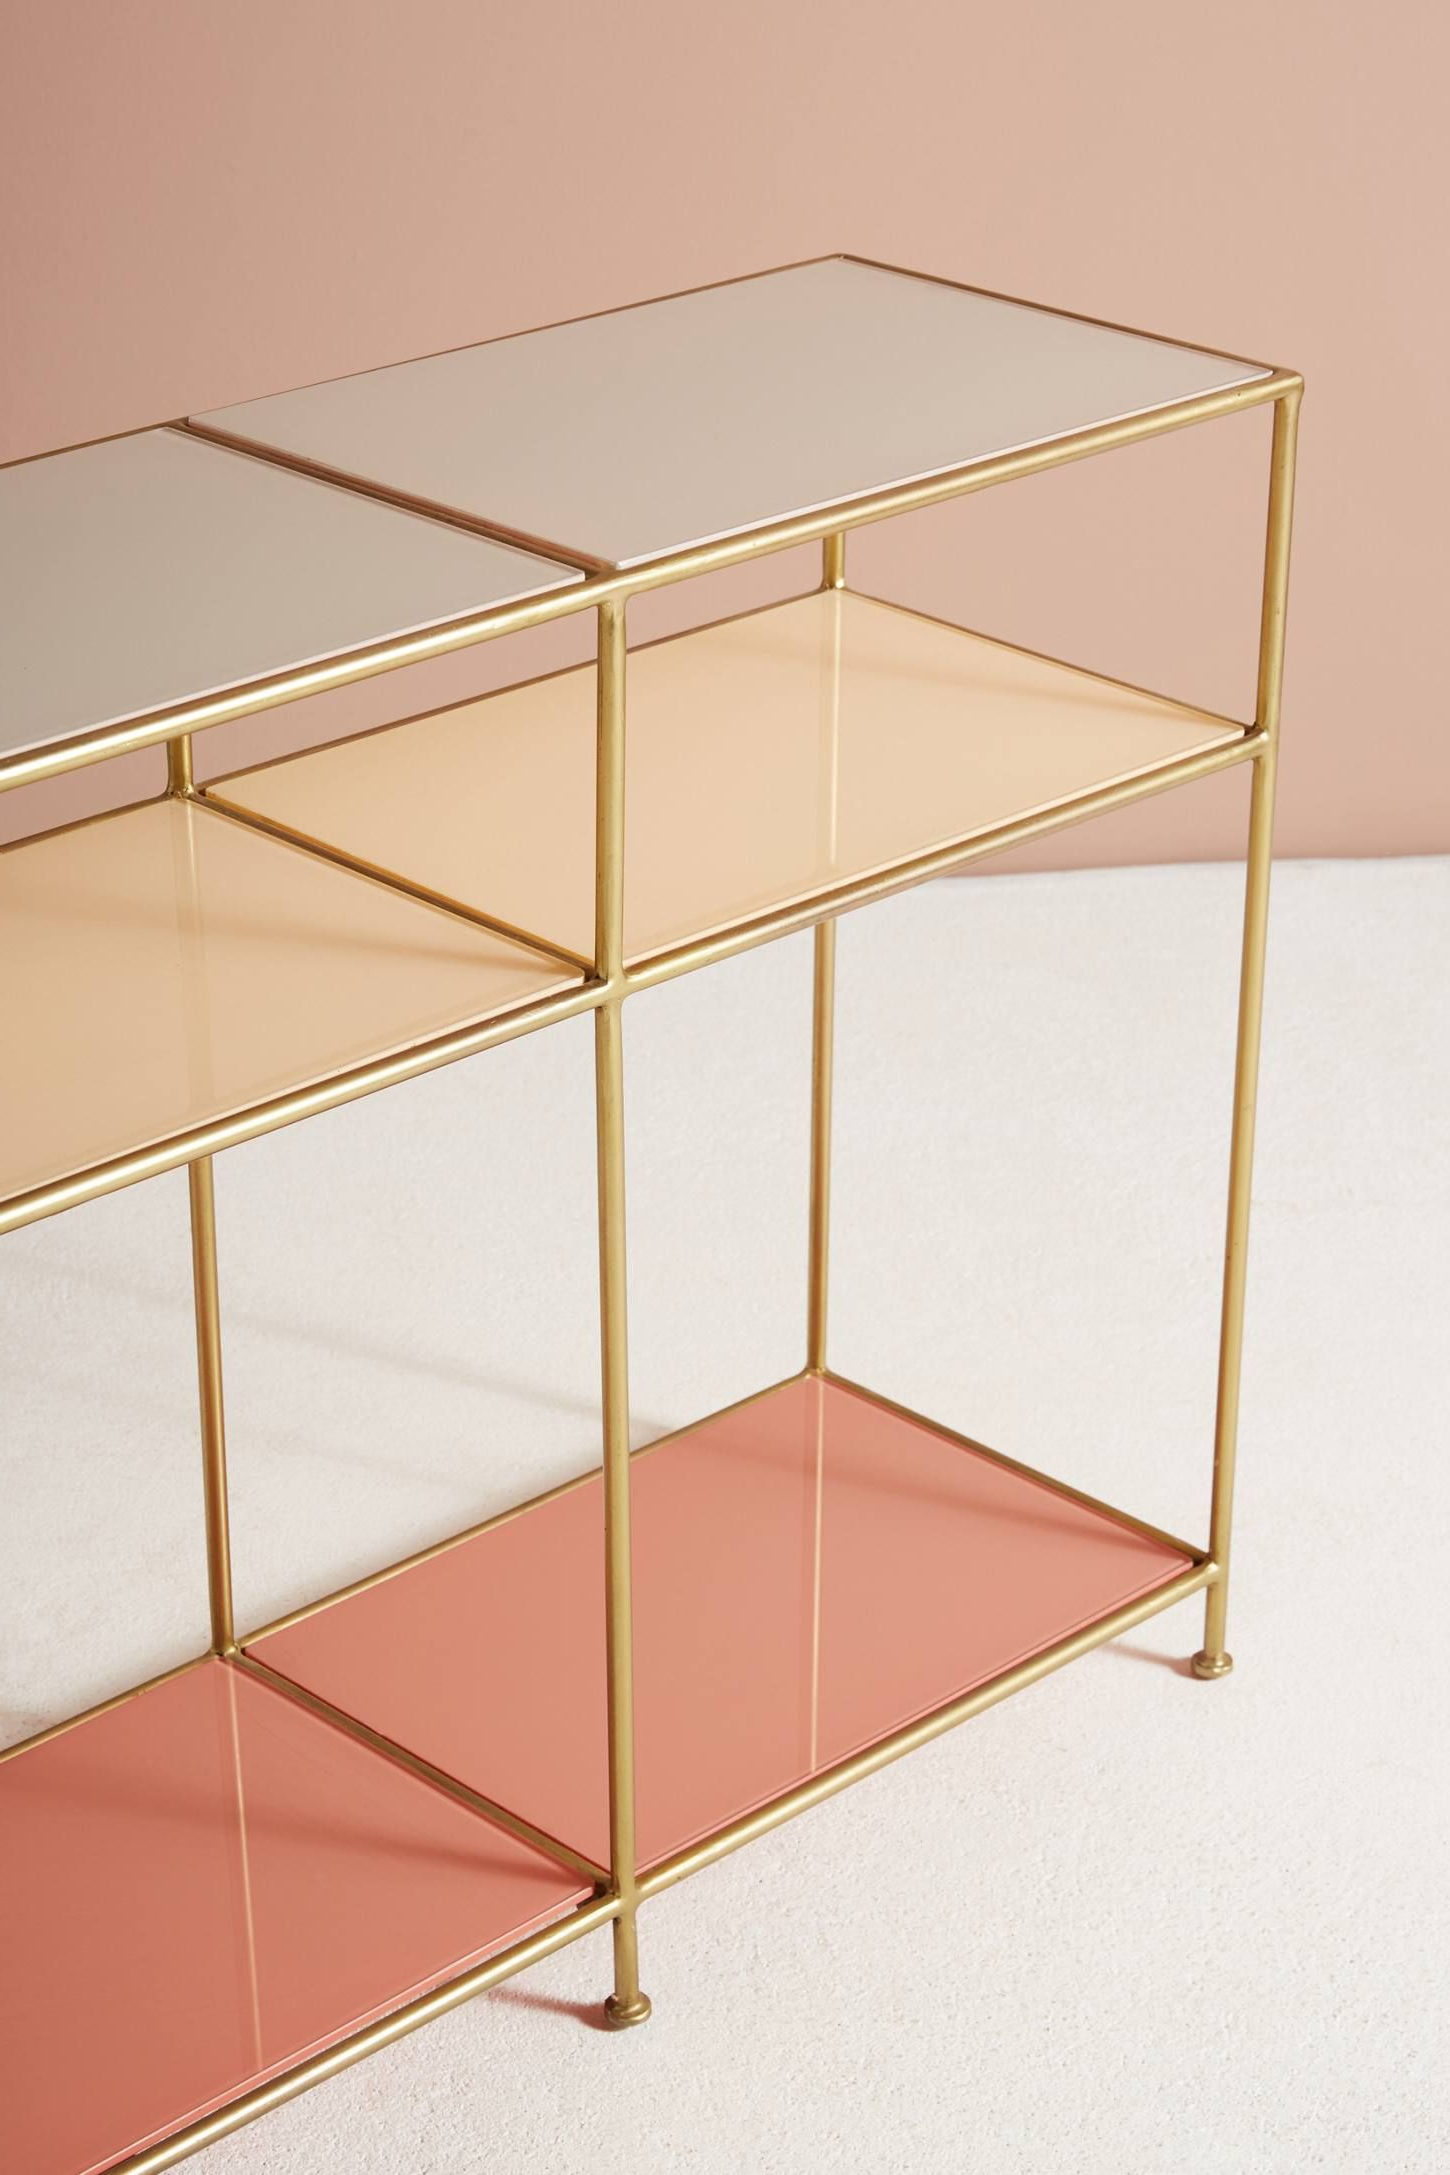 Tinted Glass Console Table | Console Tables, Consoles And Credenza In Elke Glass Console Tables With Polished Aluminum Base (View 12 of 20)